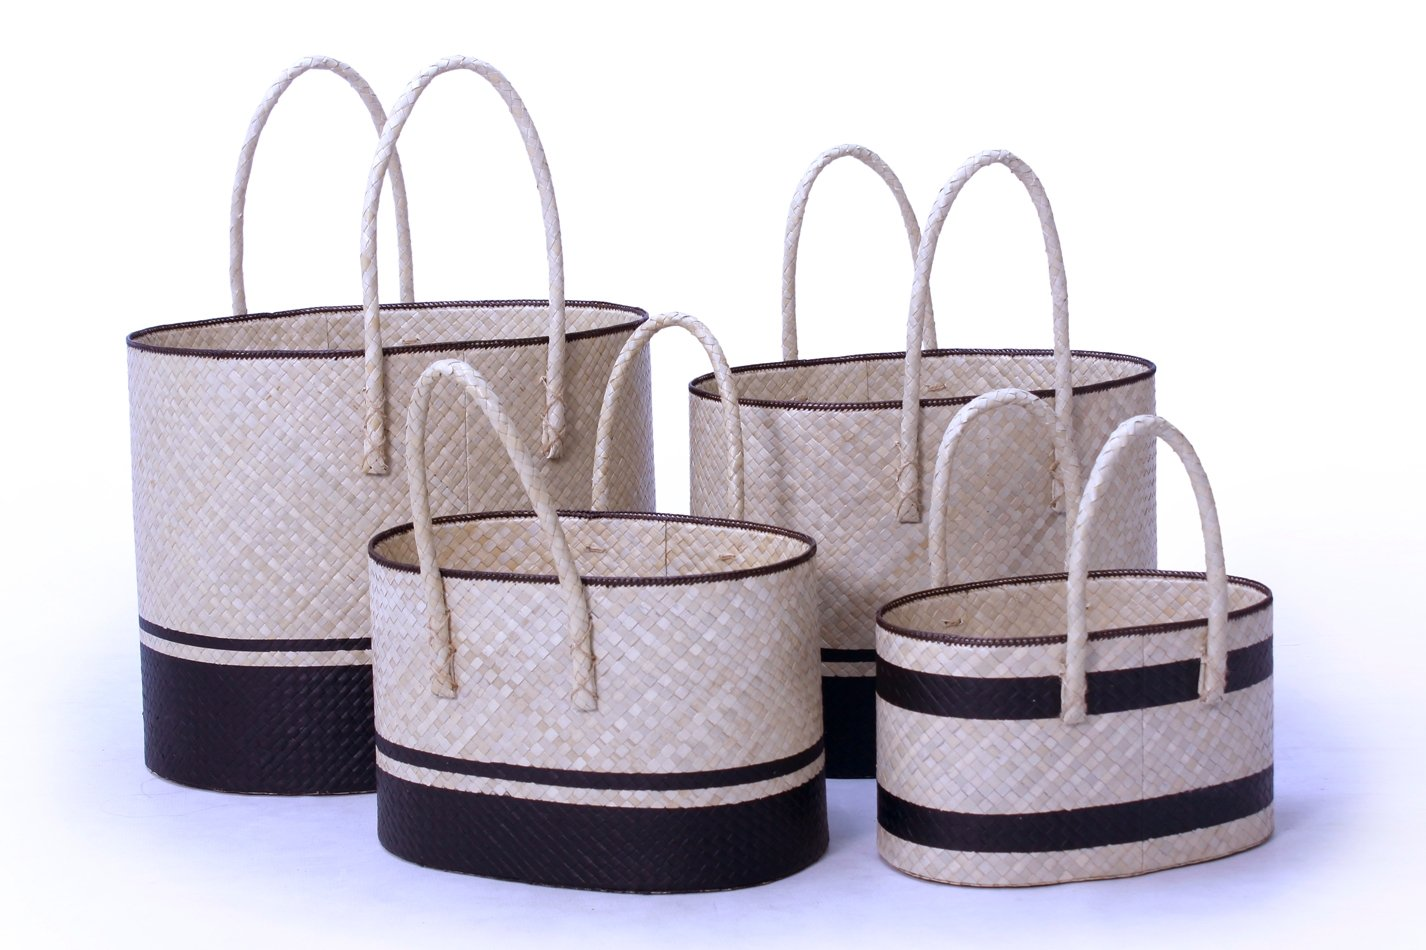 Pandanus oval basket set of 4 handicraft